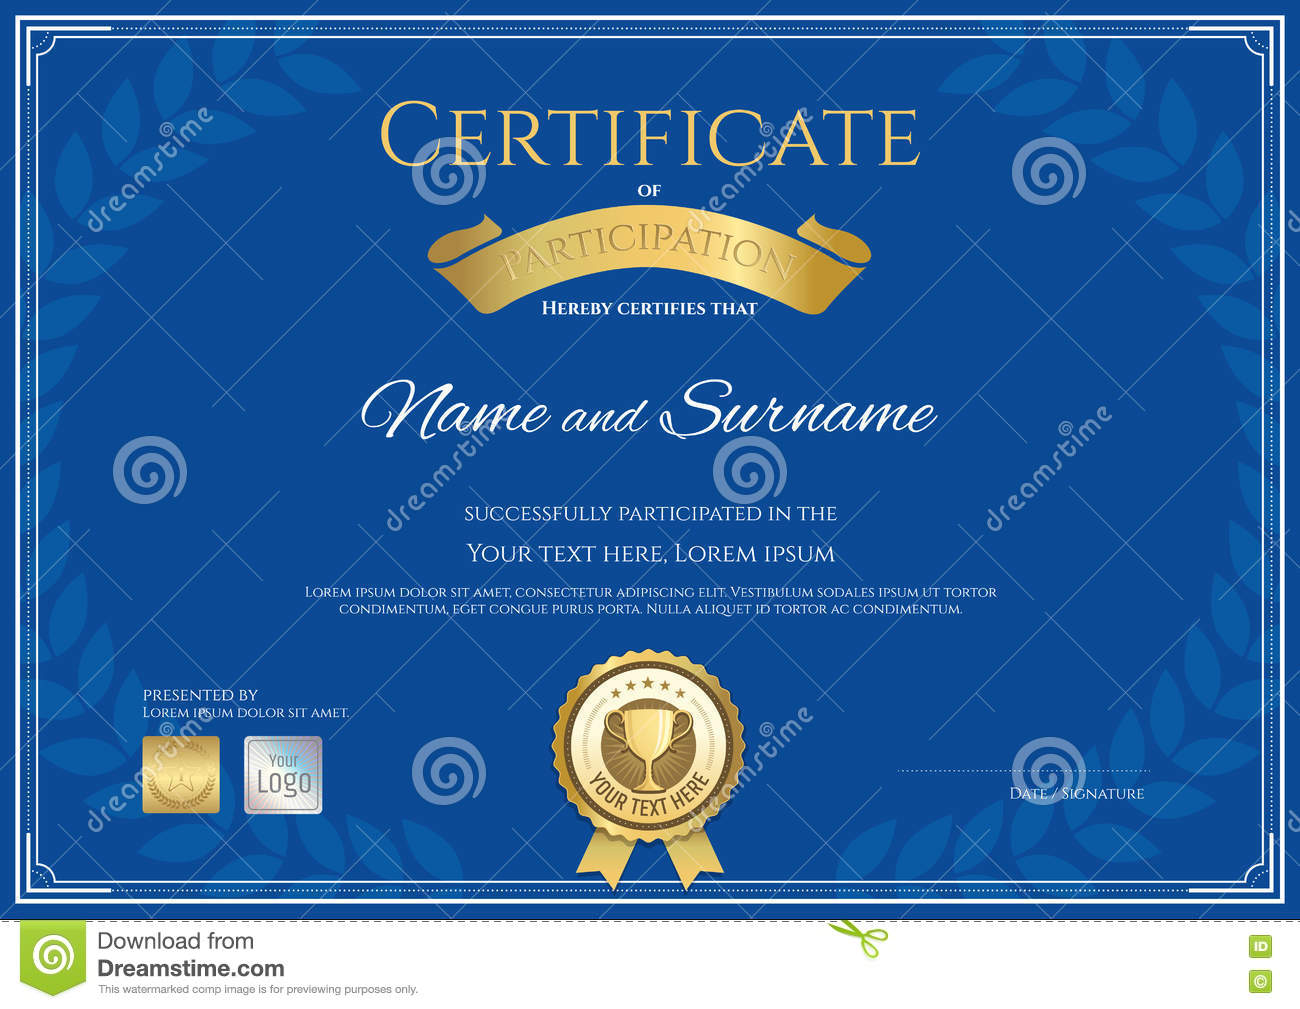 award certificate template free download - certificate of participation template in gold color vector